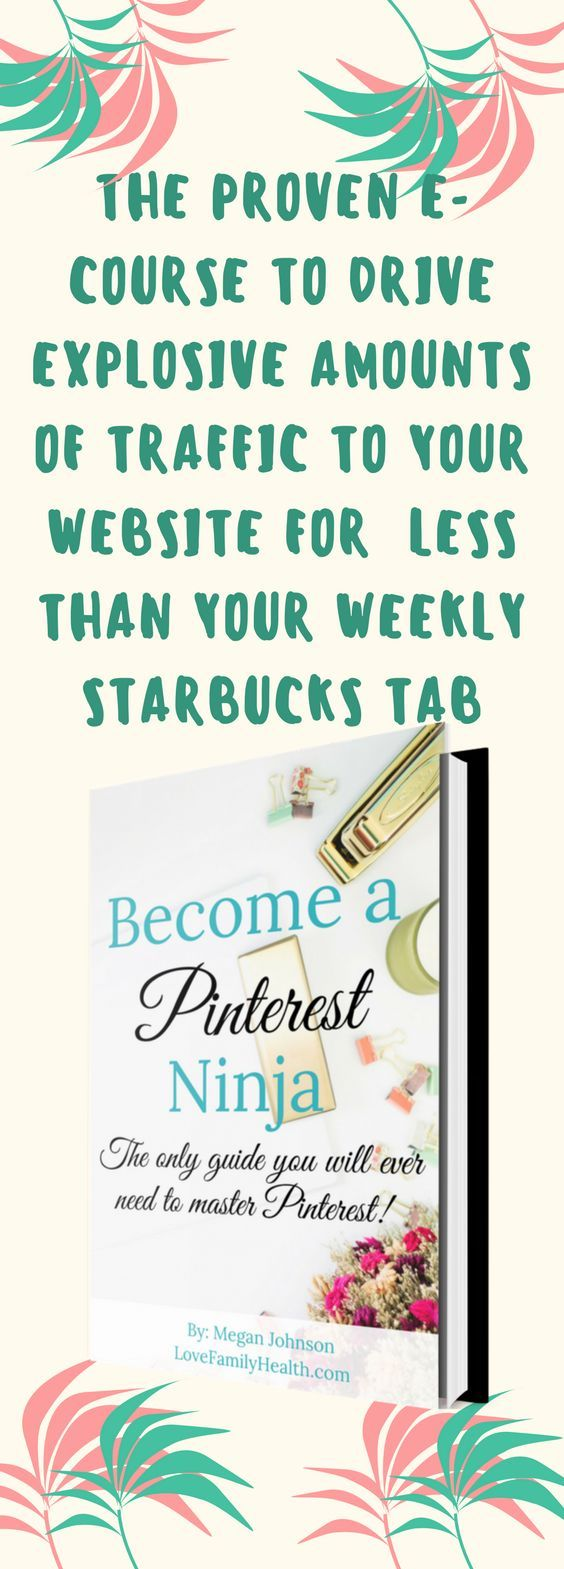 What if I told you that you could drive tons of traffic to your site without spending hours upon hours promoting it online? Read this THE PROVEN E-COURSE TO DRIVE EXPLOSIVE AMOUNTS OF TRAFFIC TO YOUR WEBSITE FOR LESS THAN YOUR WEEKLY STARBUCKS TAB